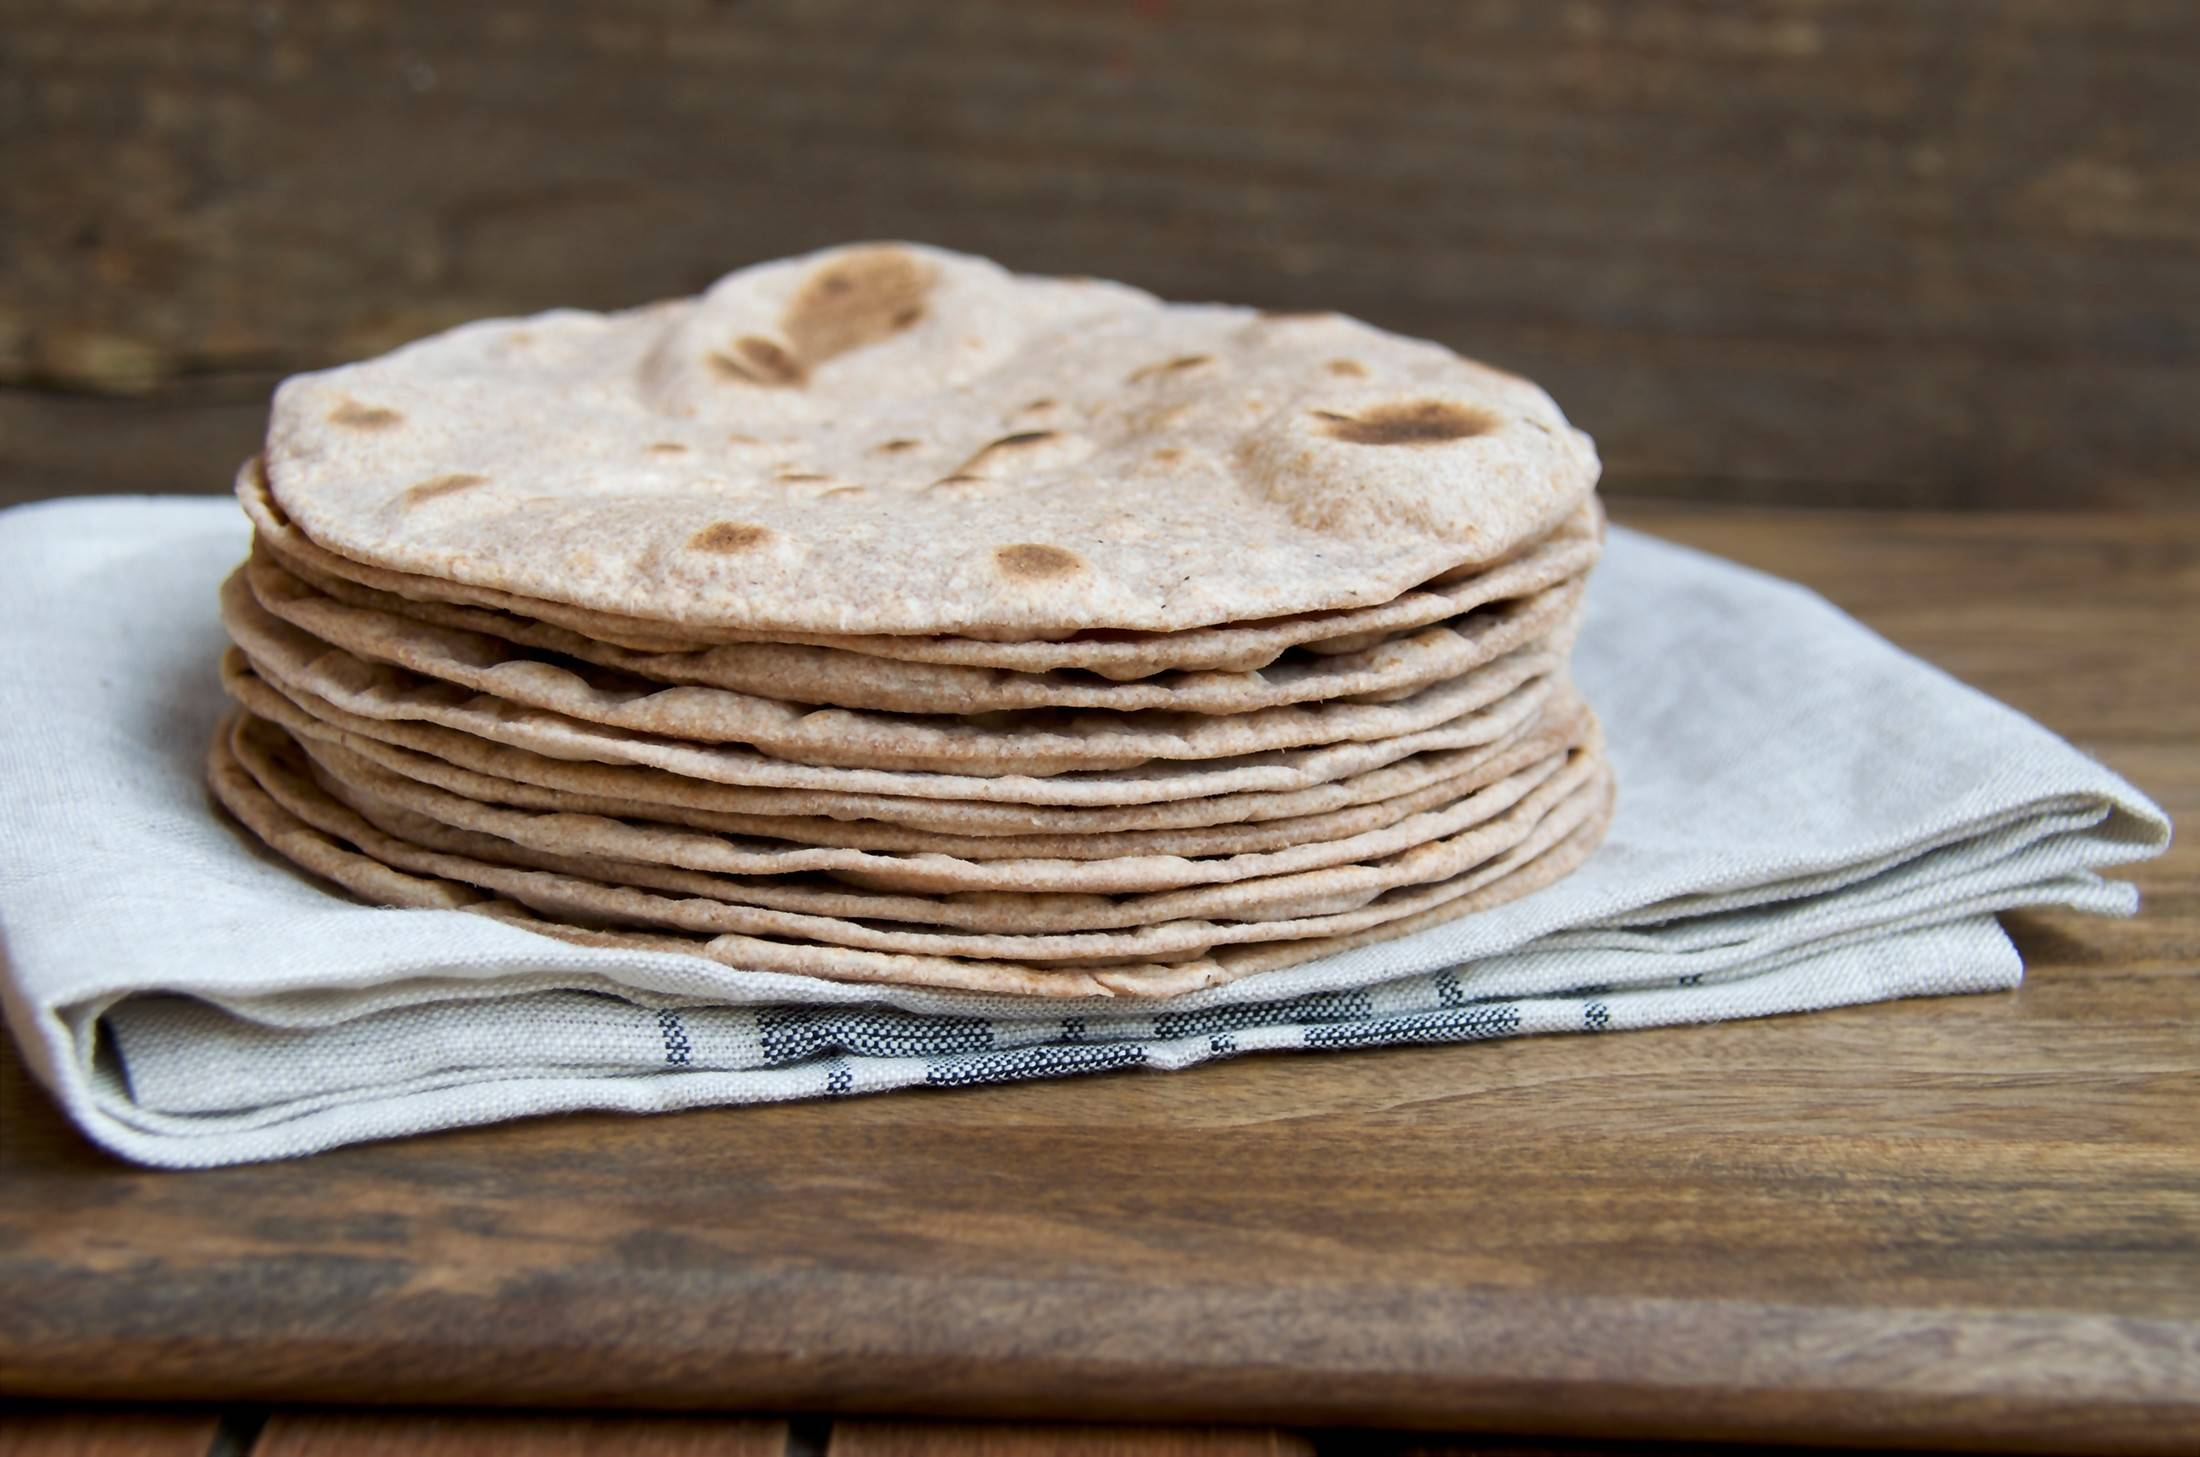 Whole wheat rotis can be made at home without any special kitchen tools.